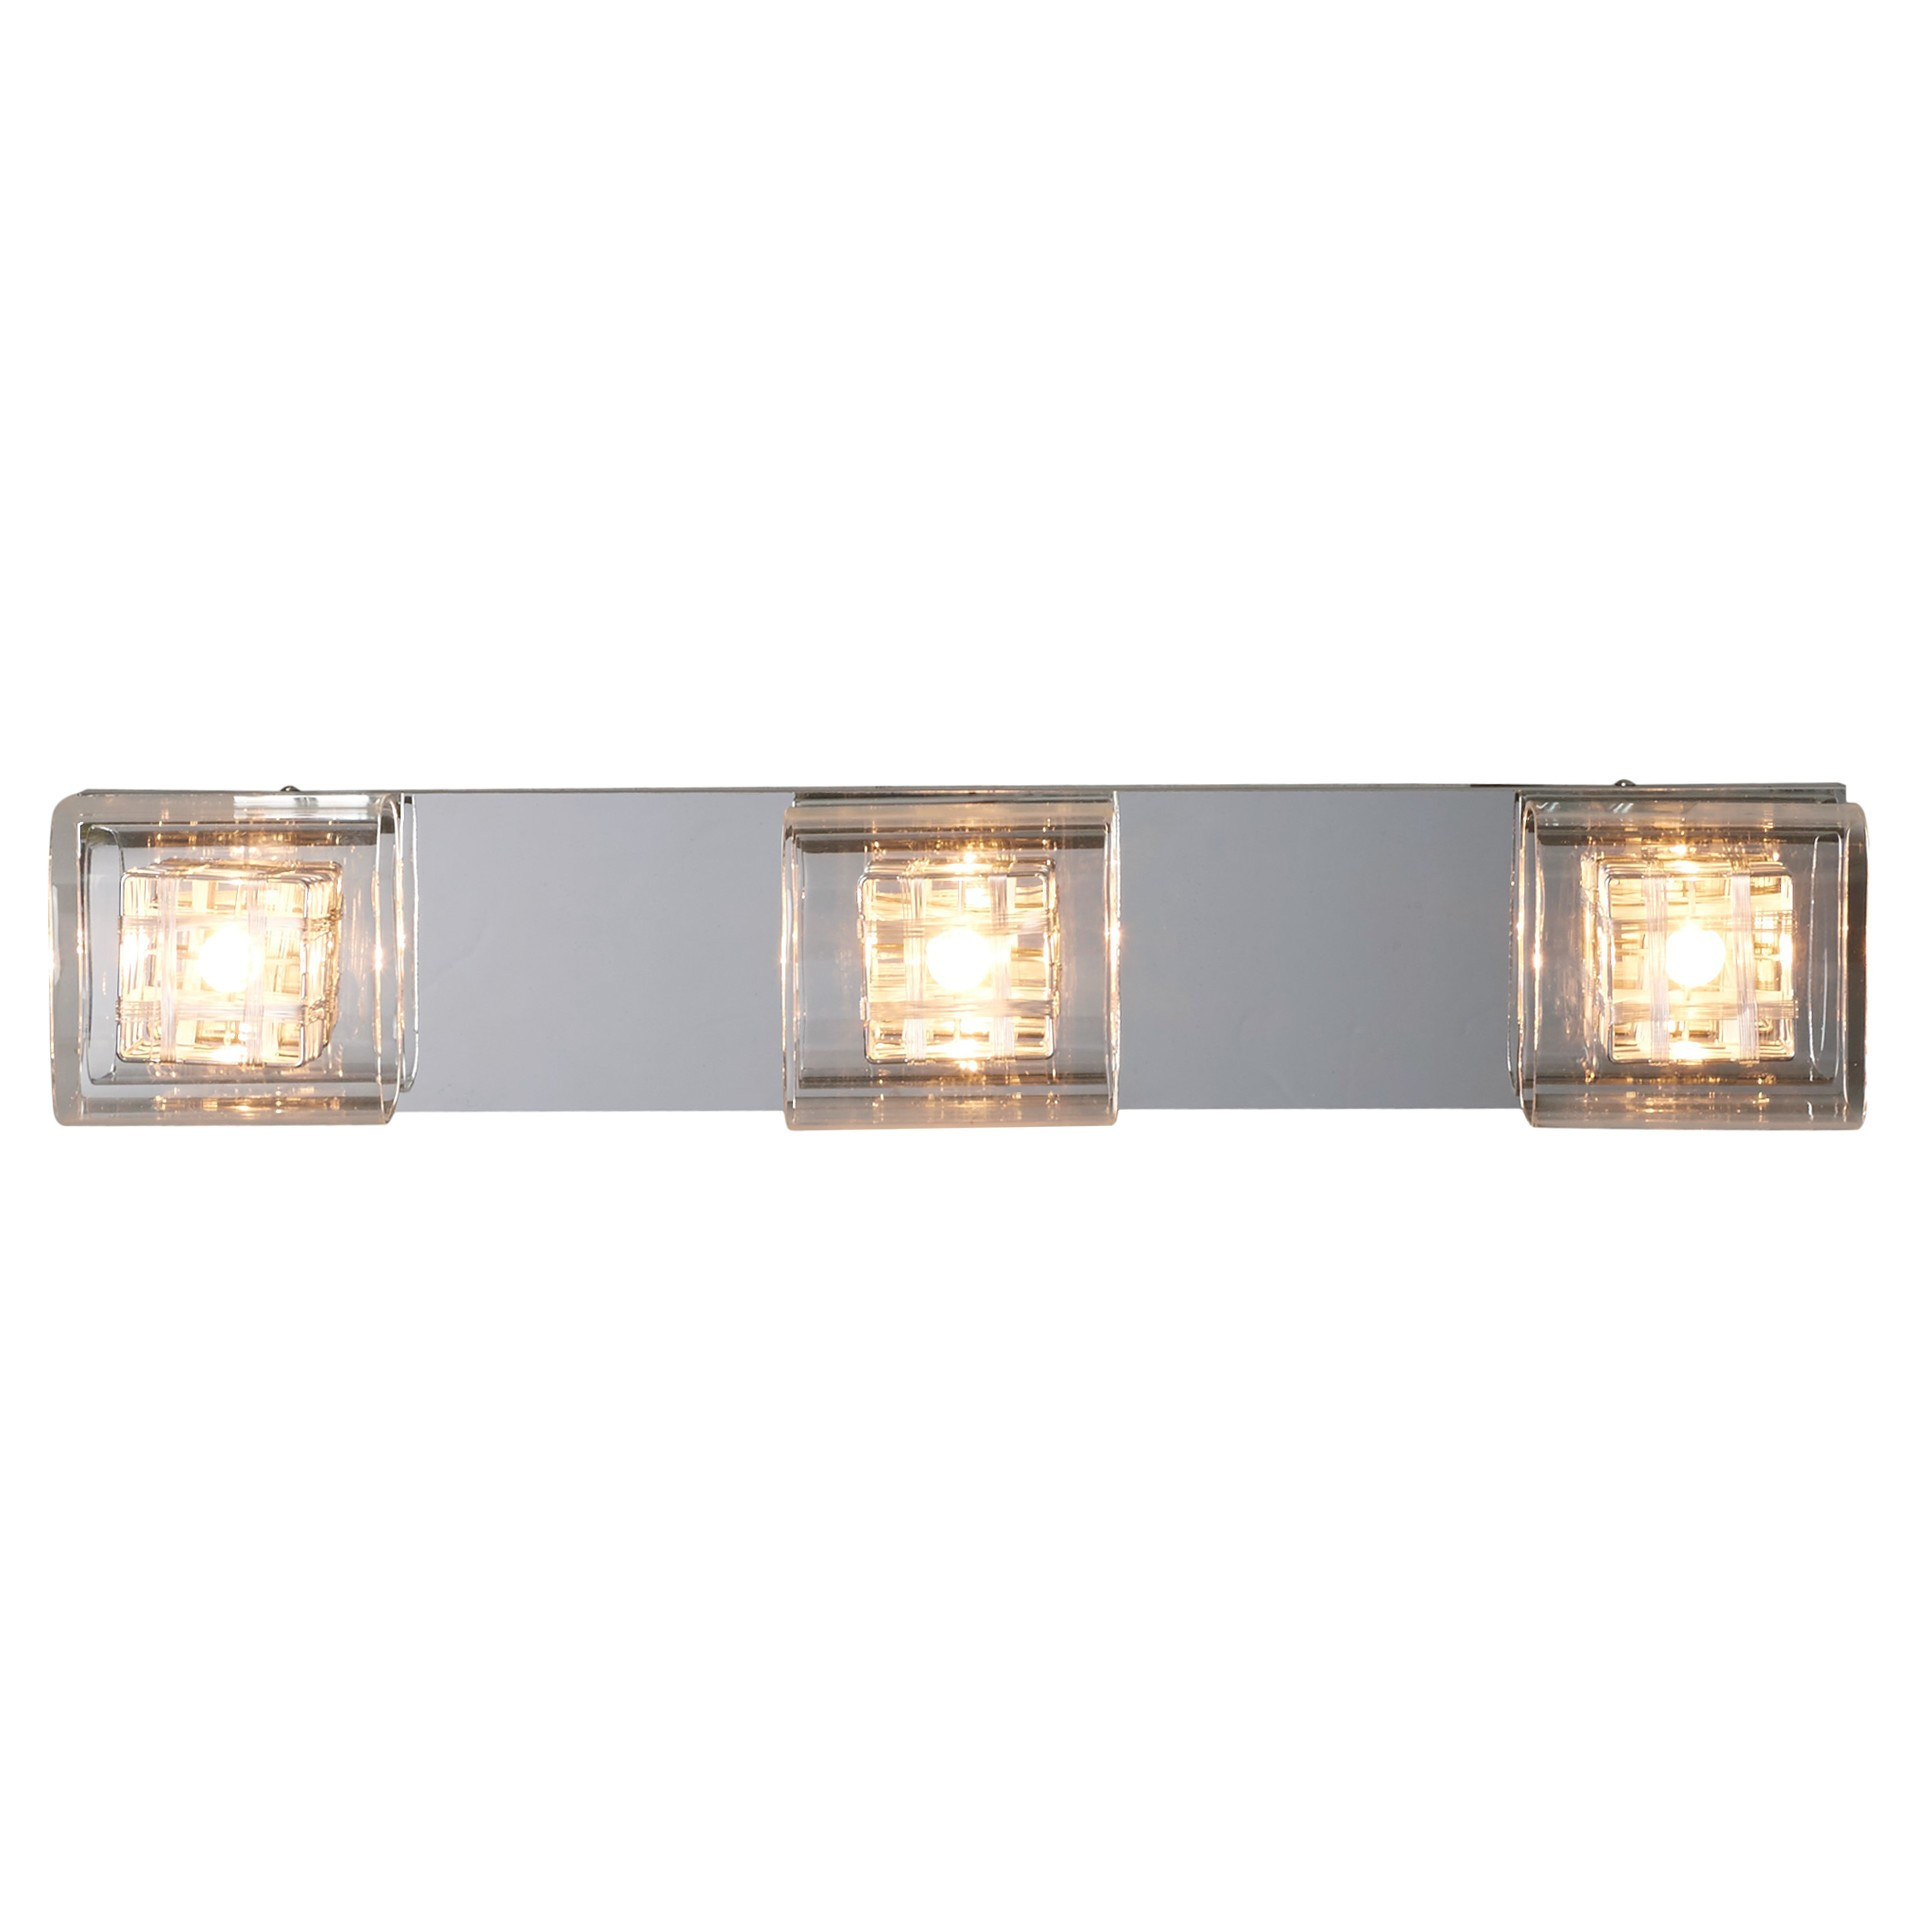 Best ideas about Bathroom Light Bar . Save or Pin Bathroom Light Bars Bathroom Lighting Ideas With Vanity Now.